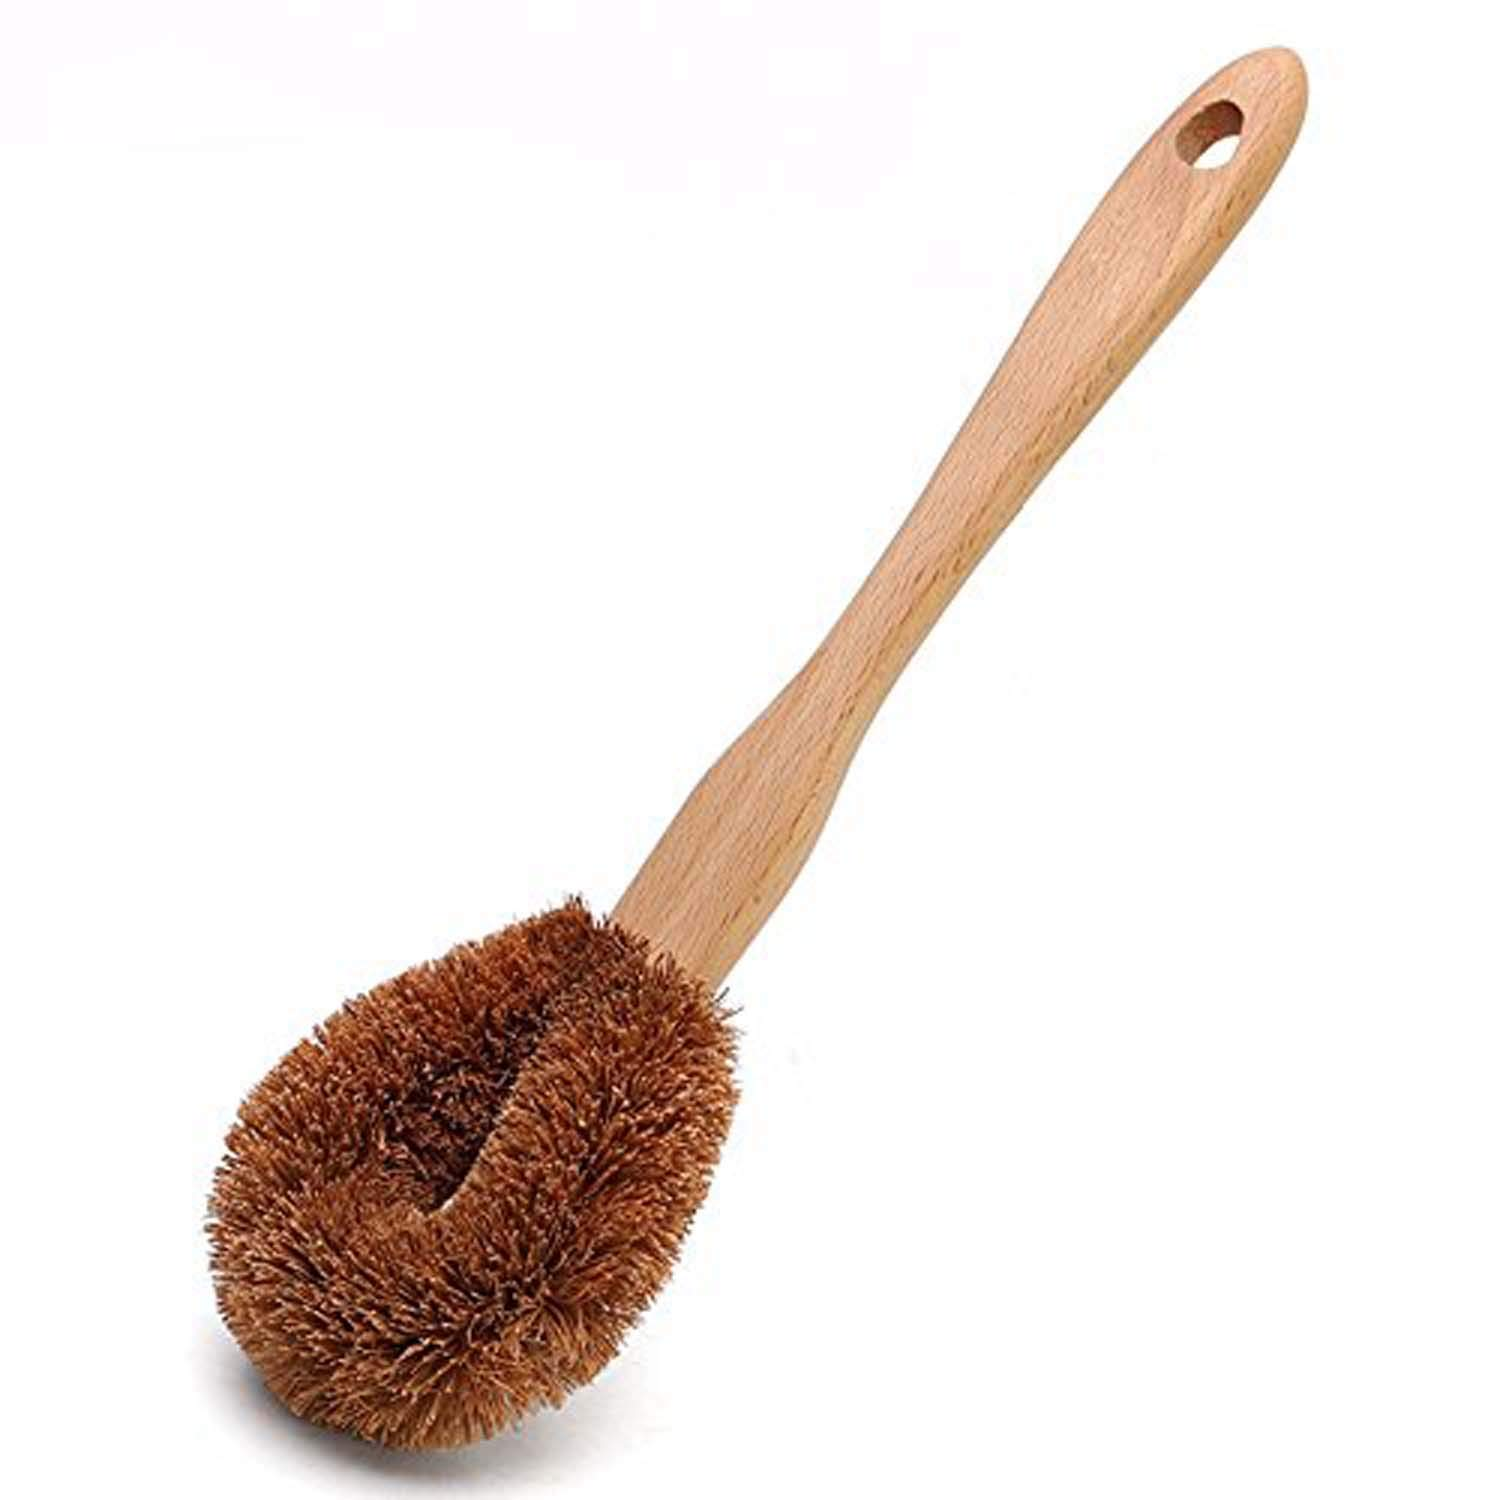 GOHIDE 1pc Bowl Clearing Brush by Natural Coconut Plant Fiber and Beechwood Antislip Grip Handle Dish Brush Premium Grade Eco-Friendly Toilet Brush, Handle Length:22cm, Brush Head L:10cm, W:8.5cm XCX